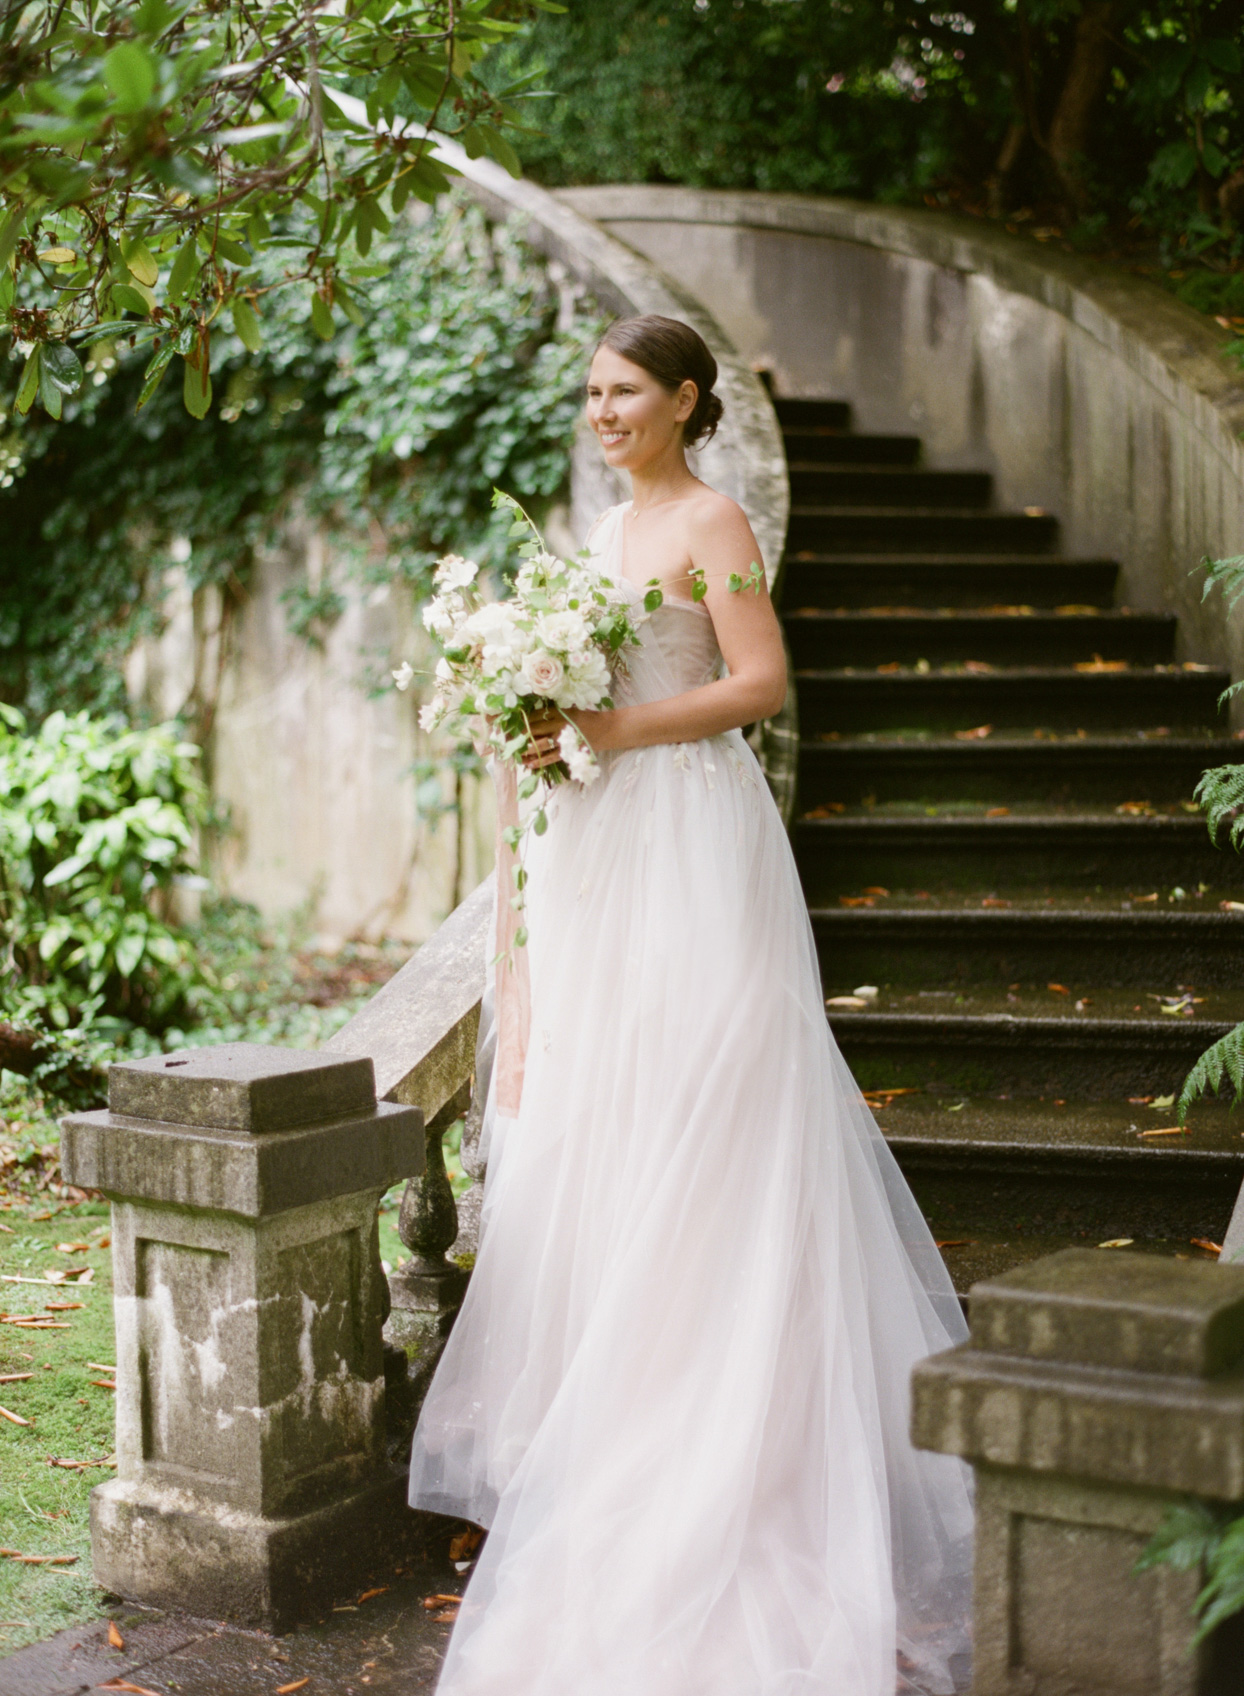 bride in flowing white tulle dress on stone stairway